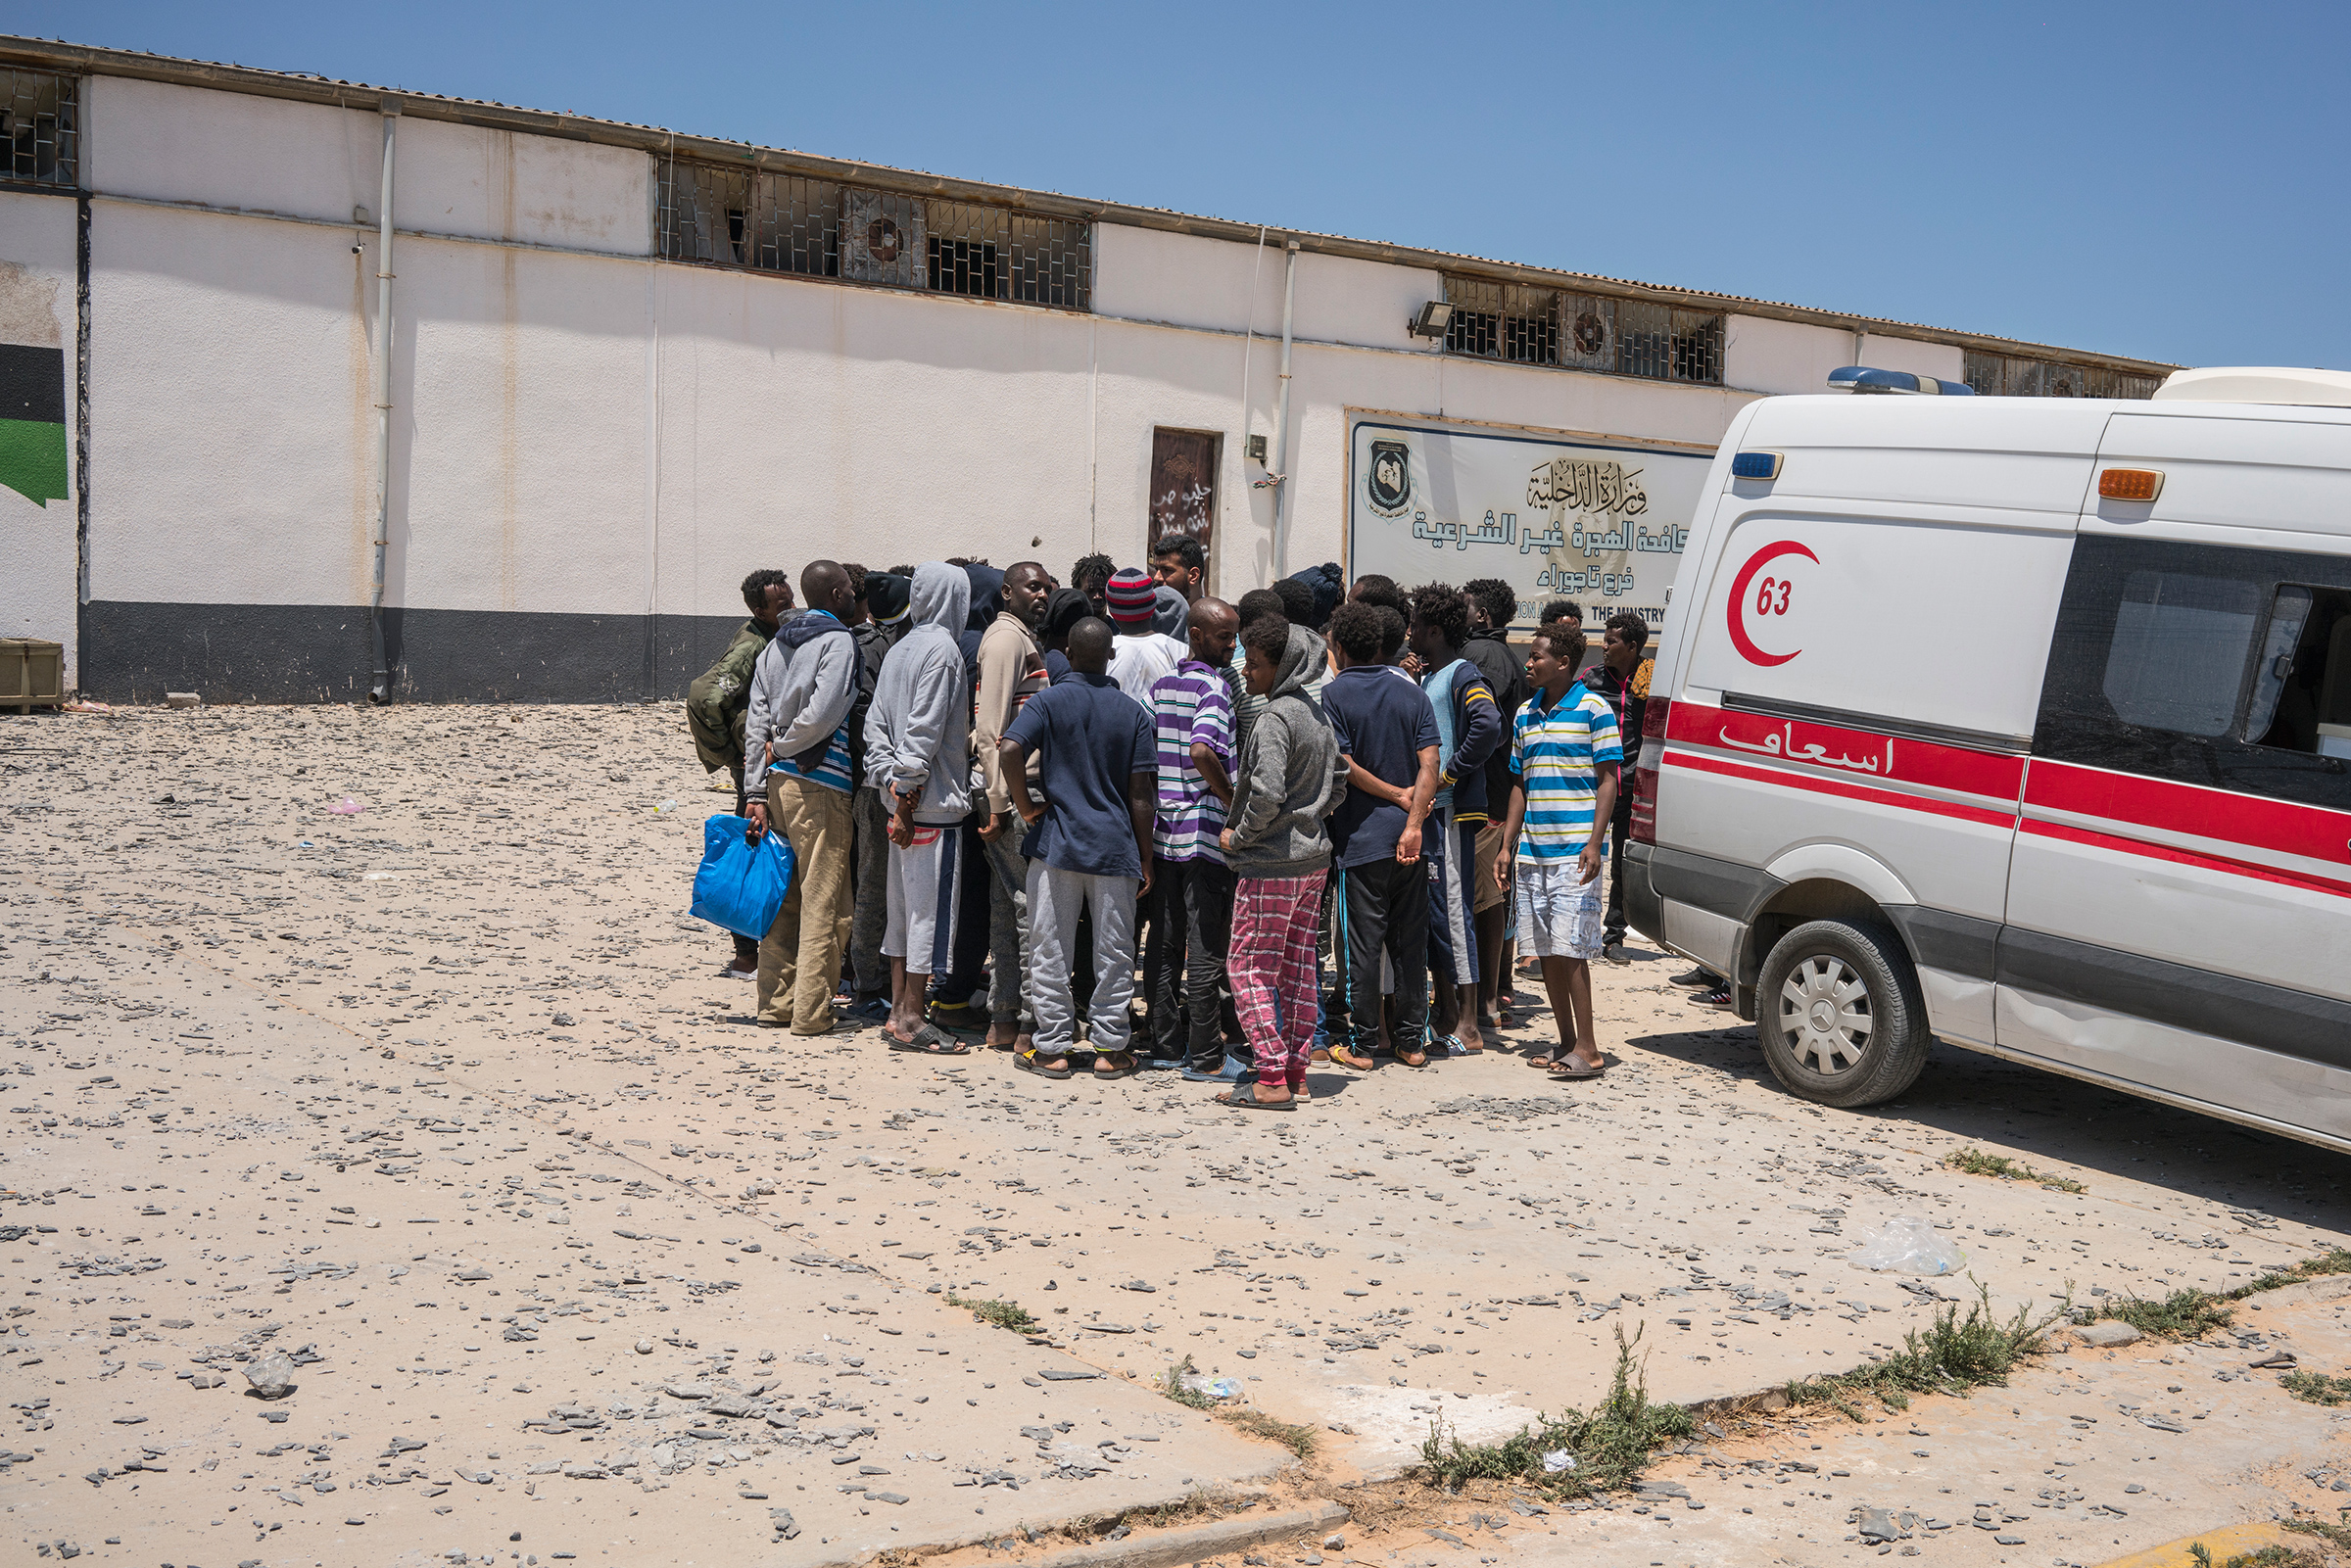 A group of migrants gather next to an ambulance outside the detention center.